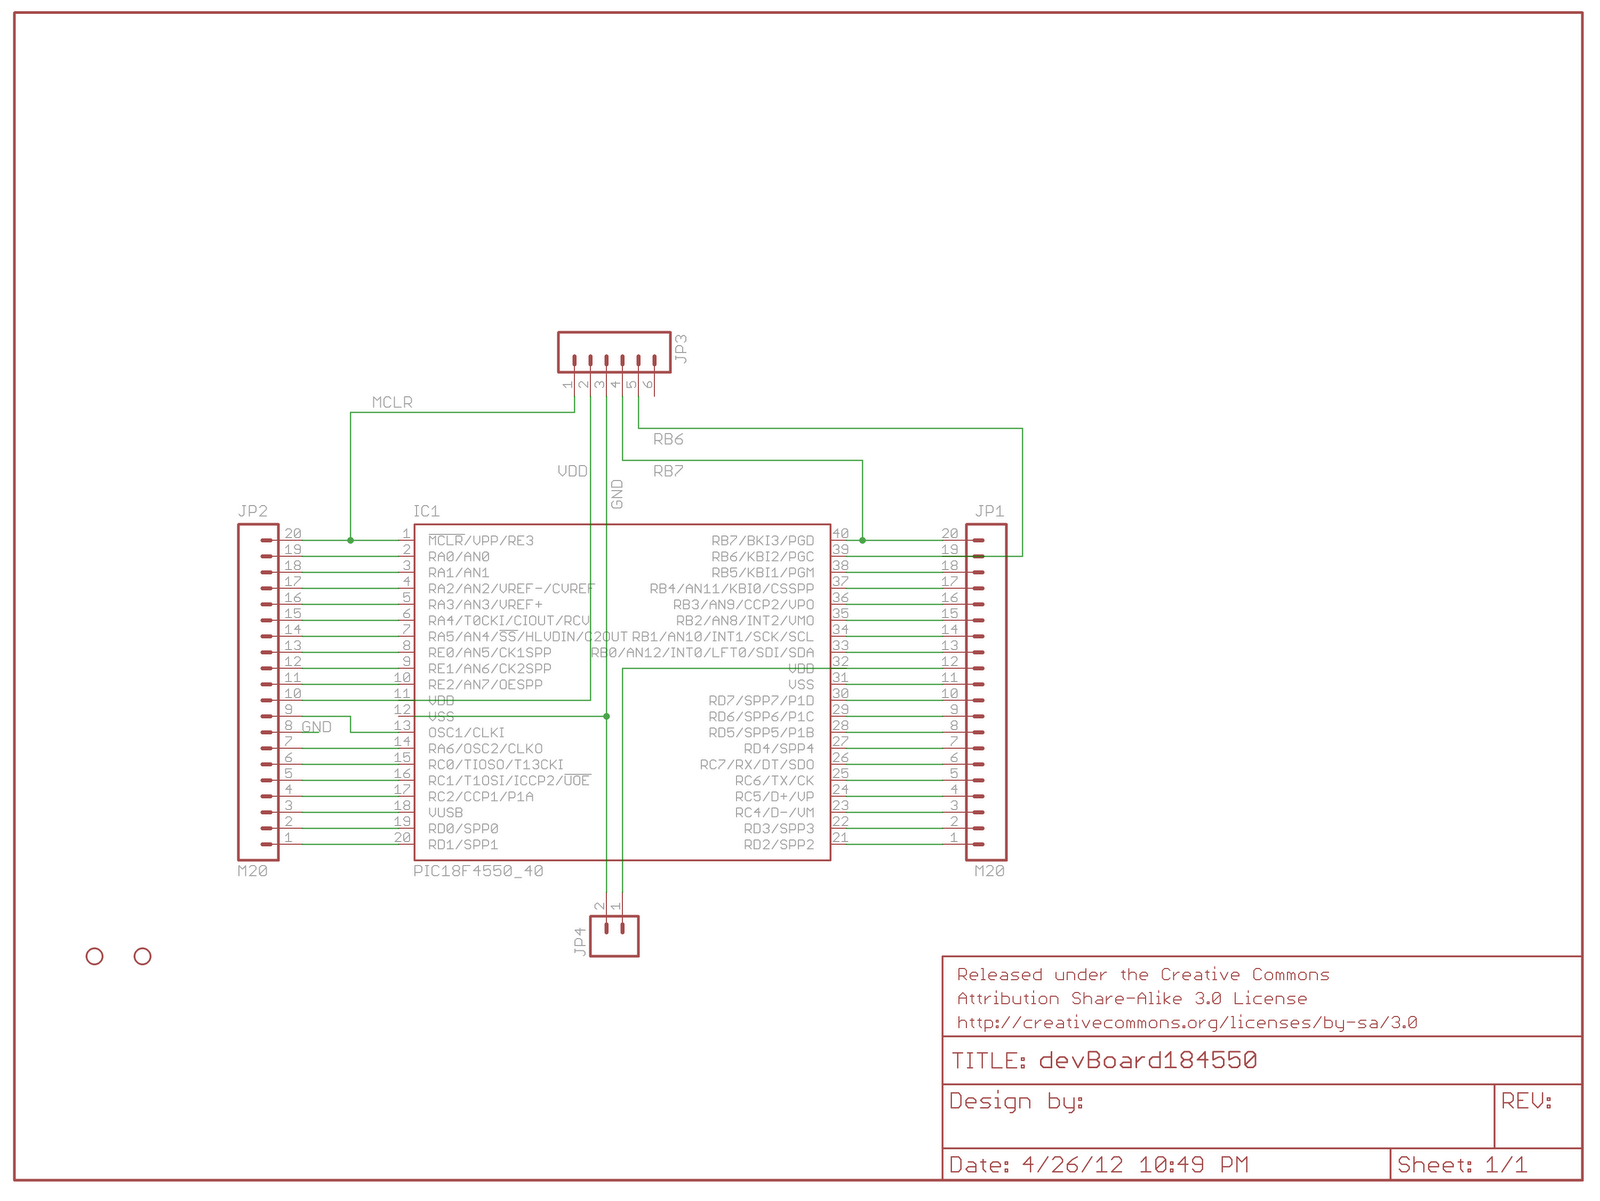 An Idoneous Principle of Tractation: Etching Your Own PCBs